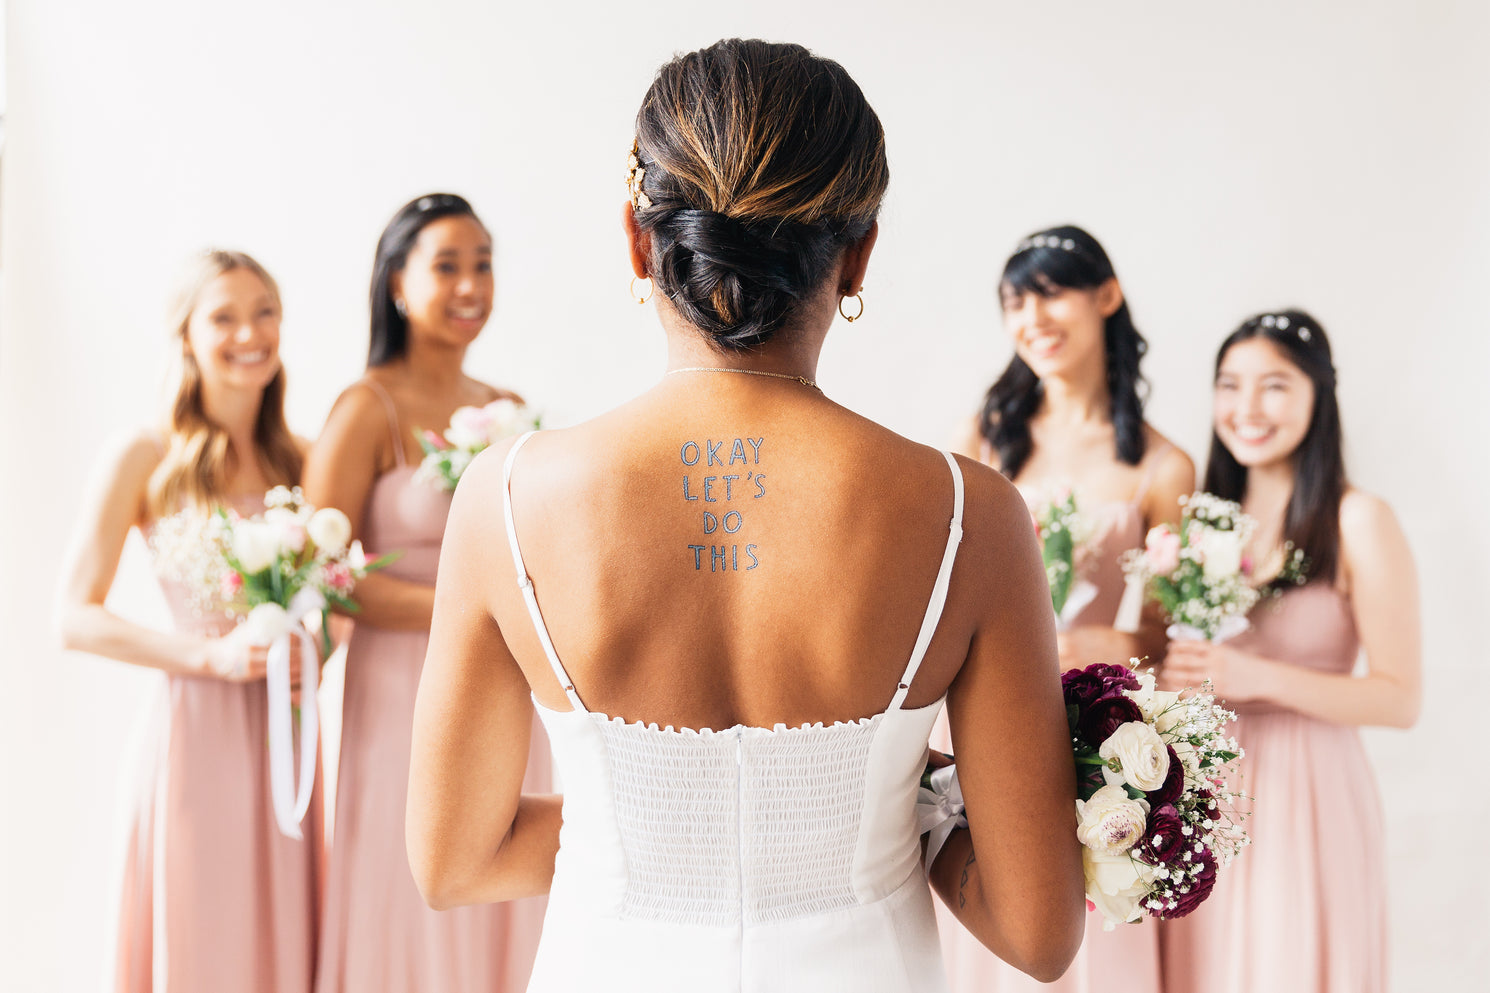 Tattly + Weddings = A Perfect Match